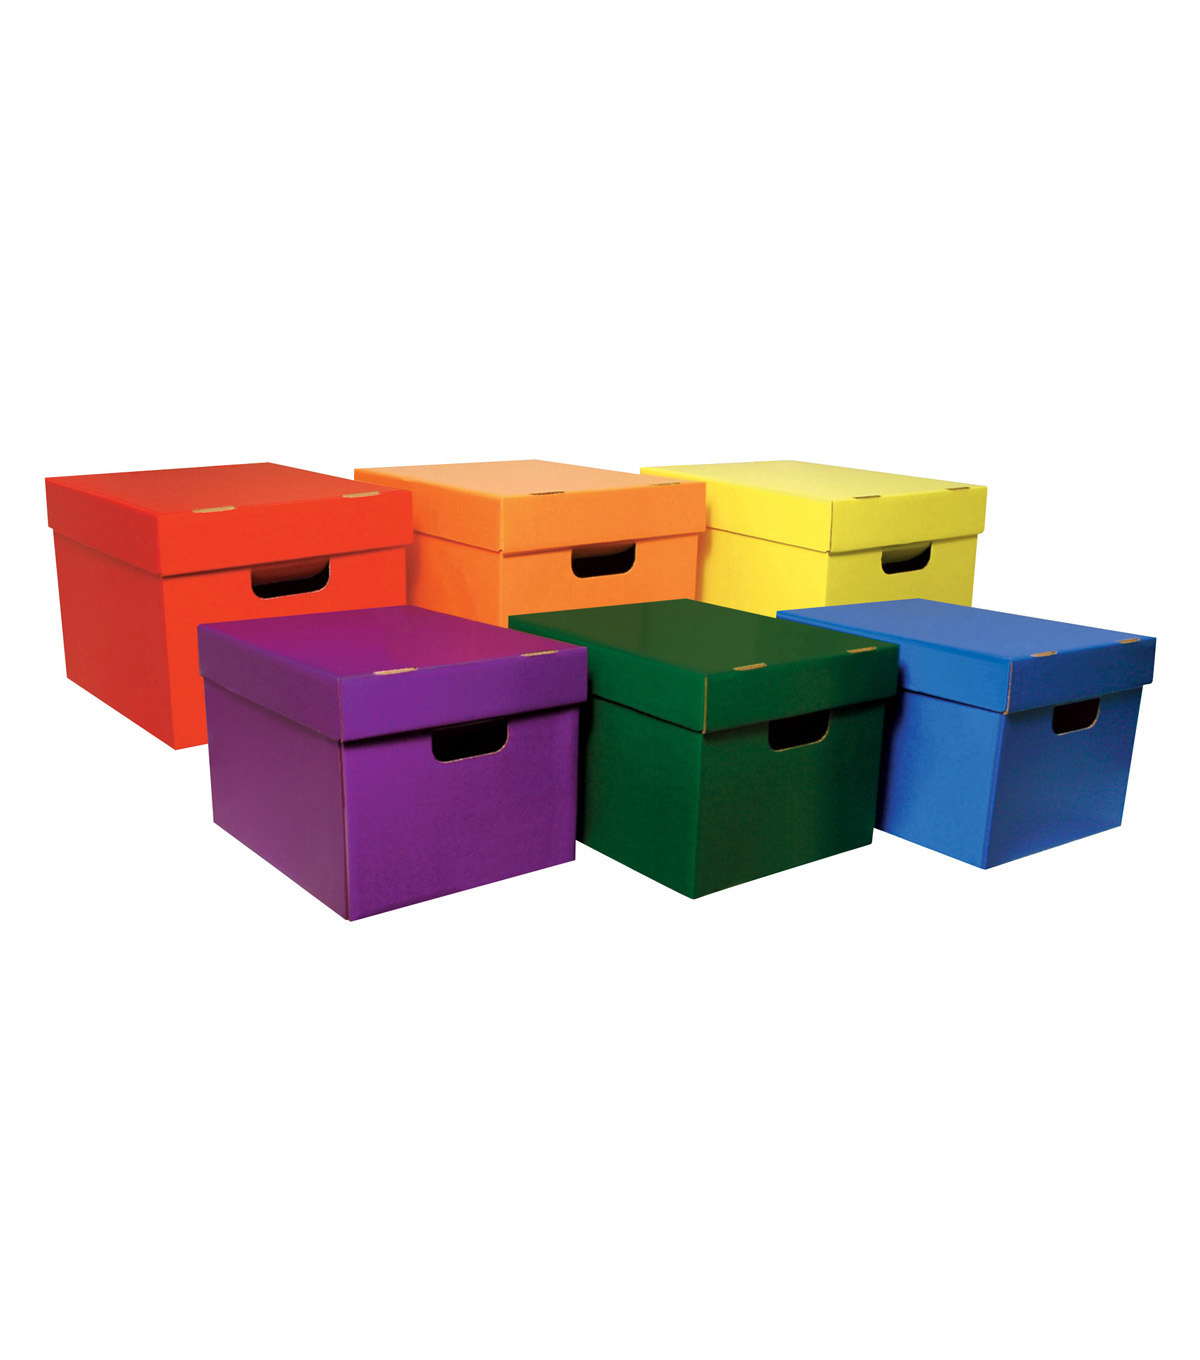 Classroom Keepers Storage Totes, 6 Assorted Colors, Pack of 6